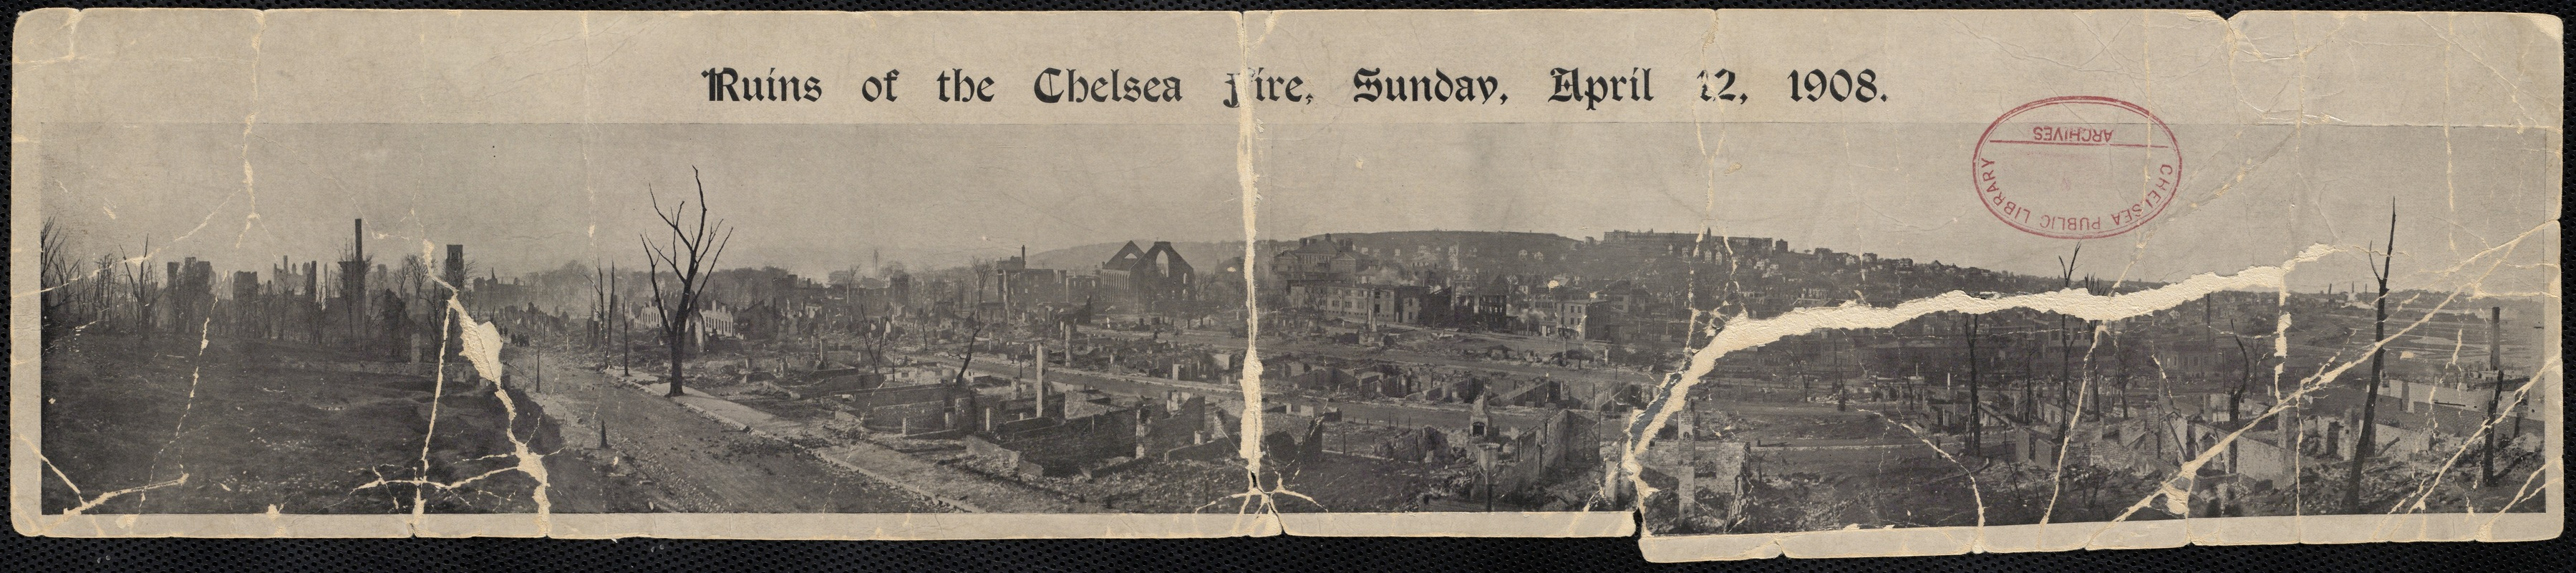 Birds eye view of the ruins of the Chelsea fire, April 12, 1908.